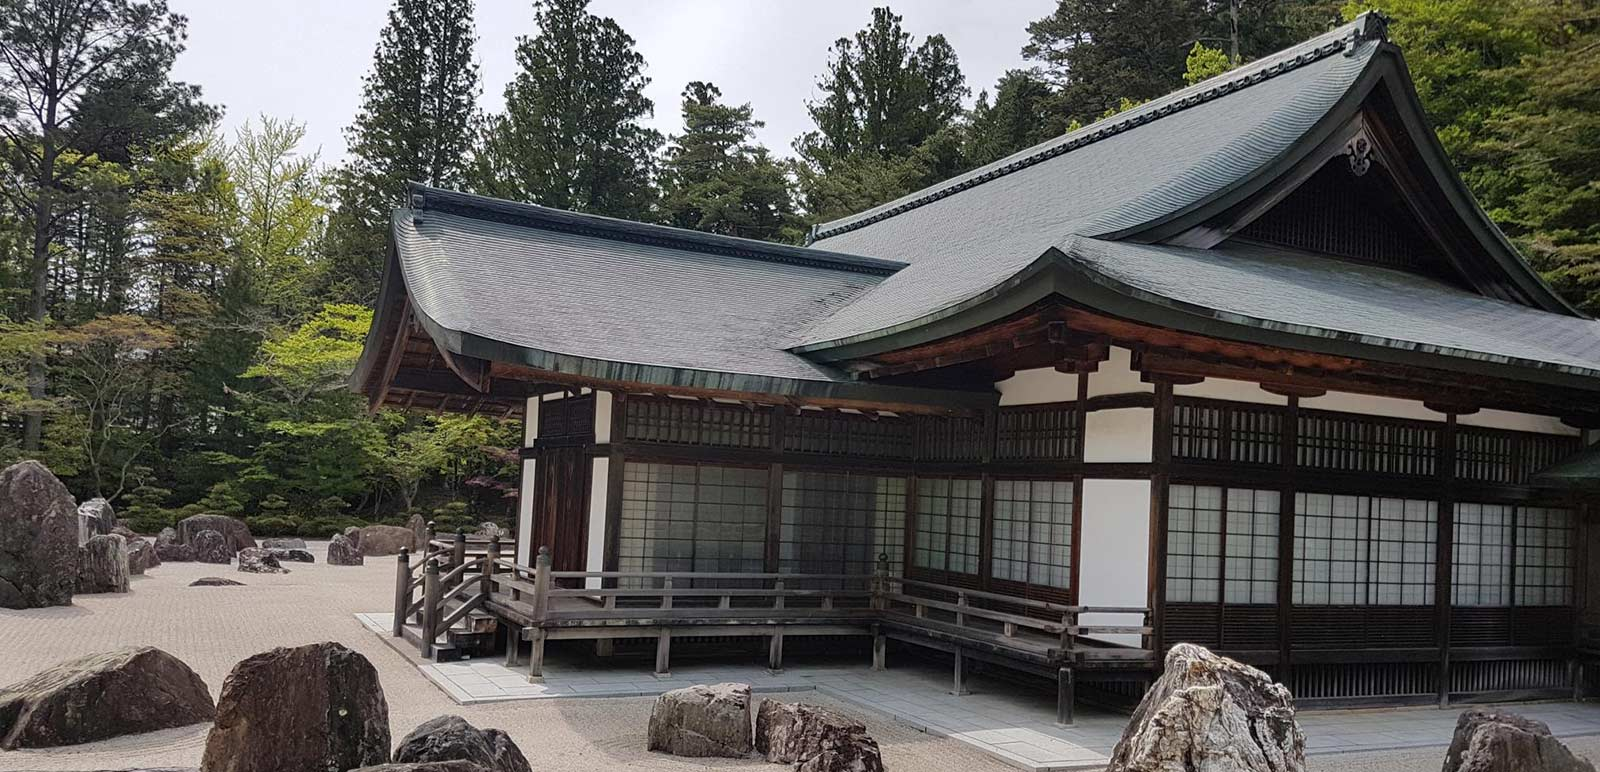 The Japanese Temple Experience